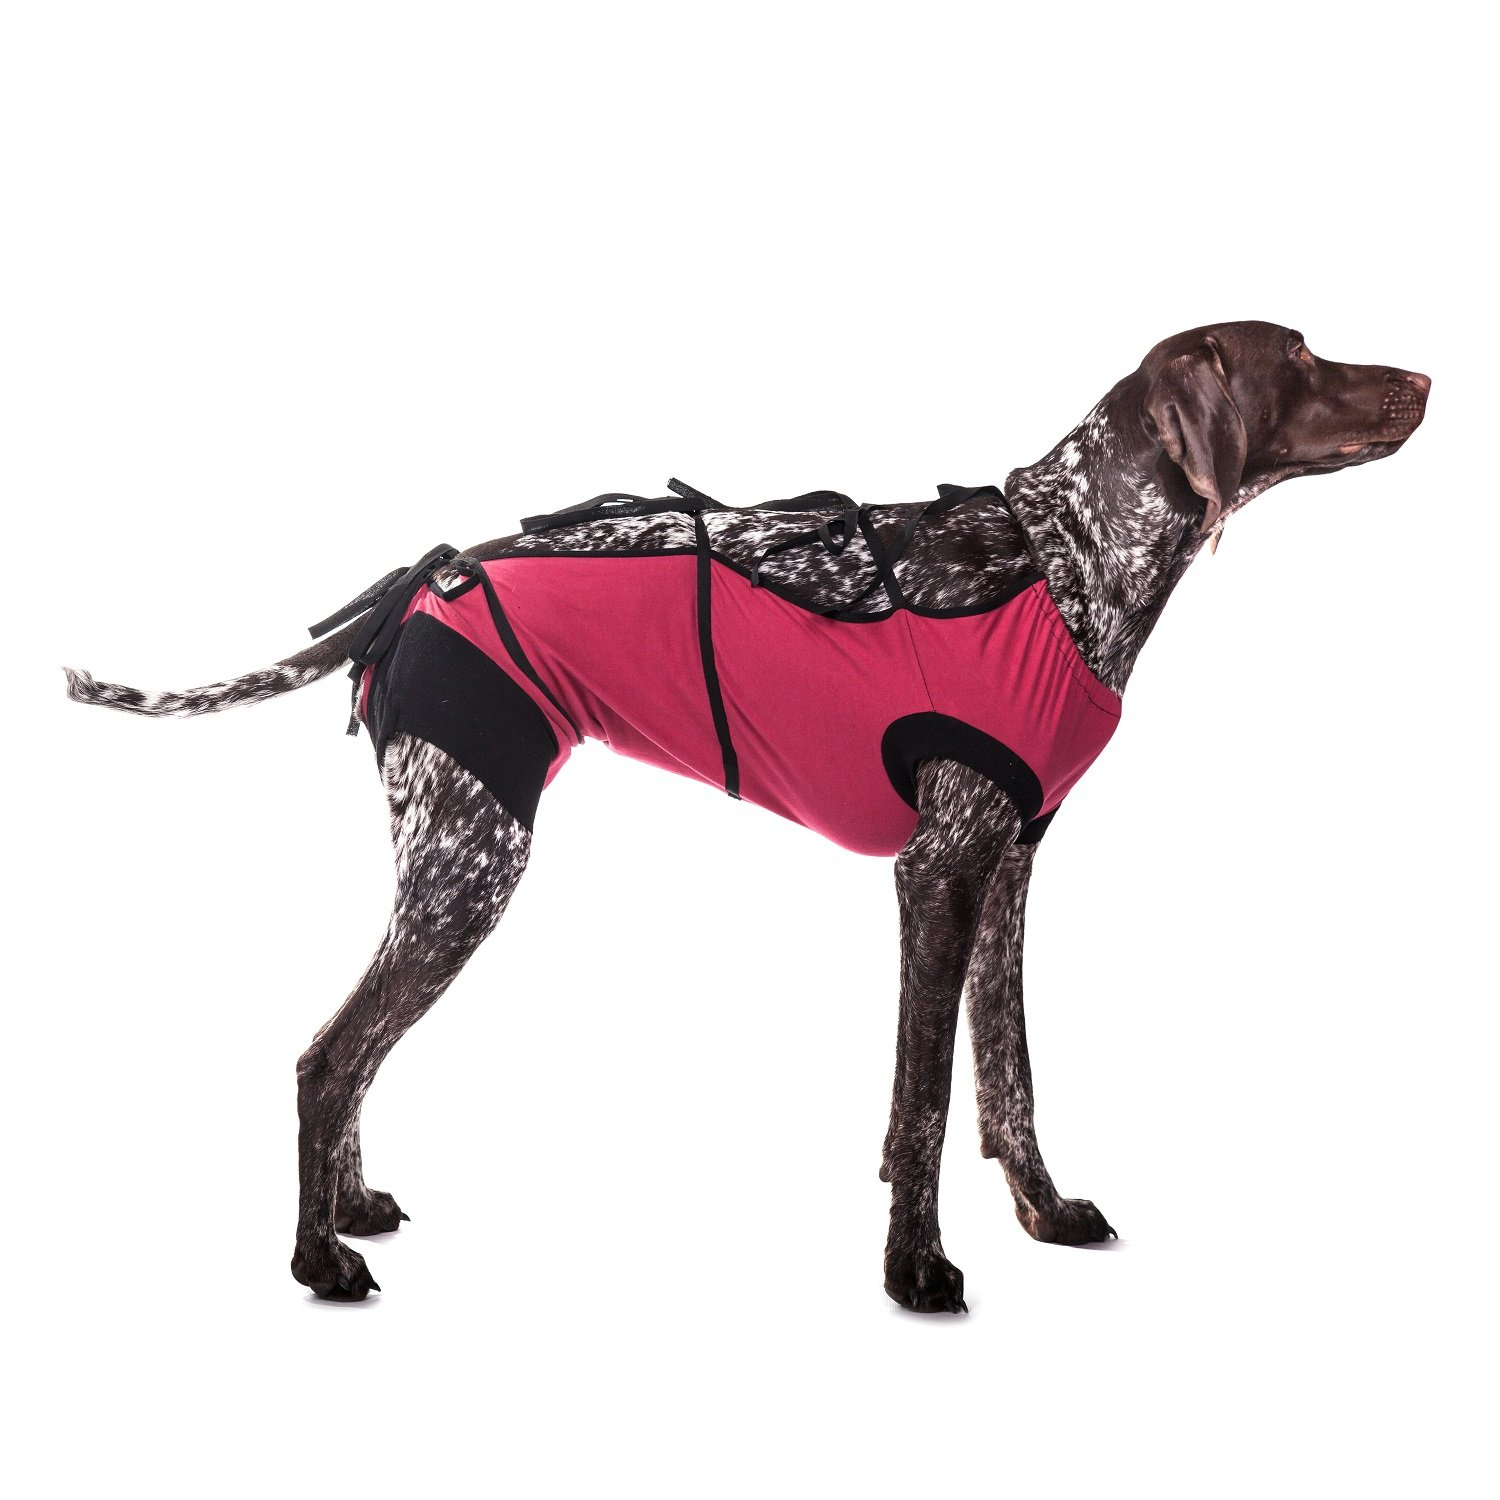 E-Collar Alternative Cats Dogs Designed to Predect Abdominal Wounds Skin Disease. Award Winning Patented Design Recommended Veterinarians Worldwide. (X-Large, Burgundy)